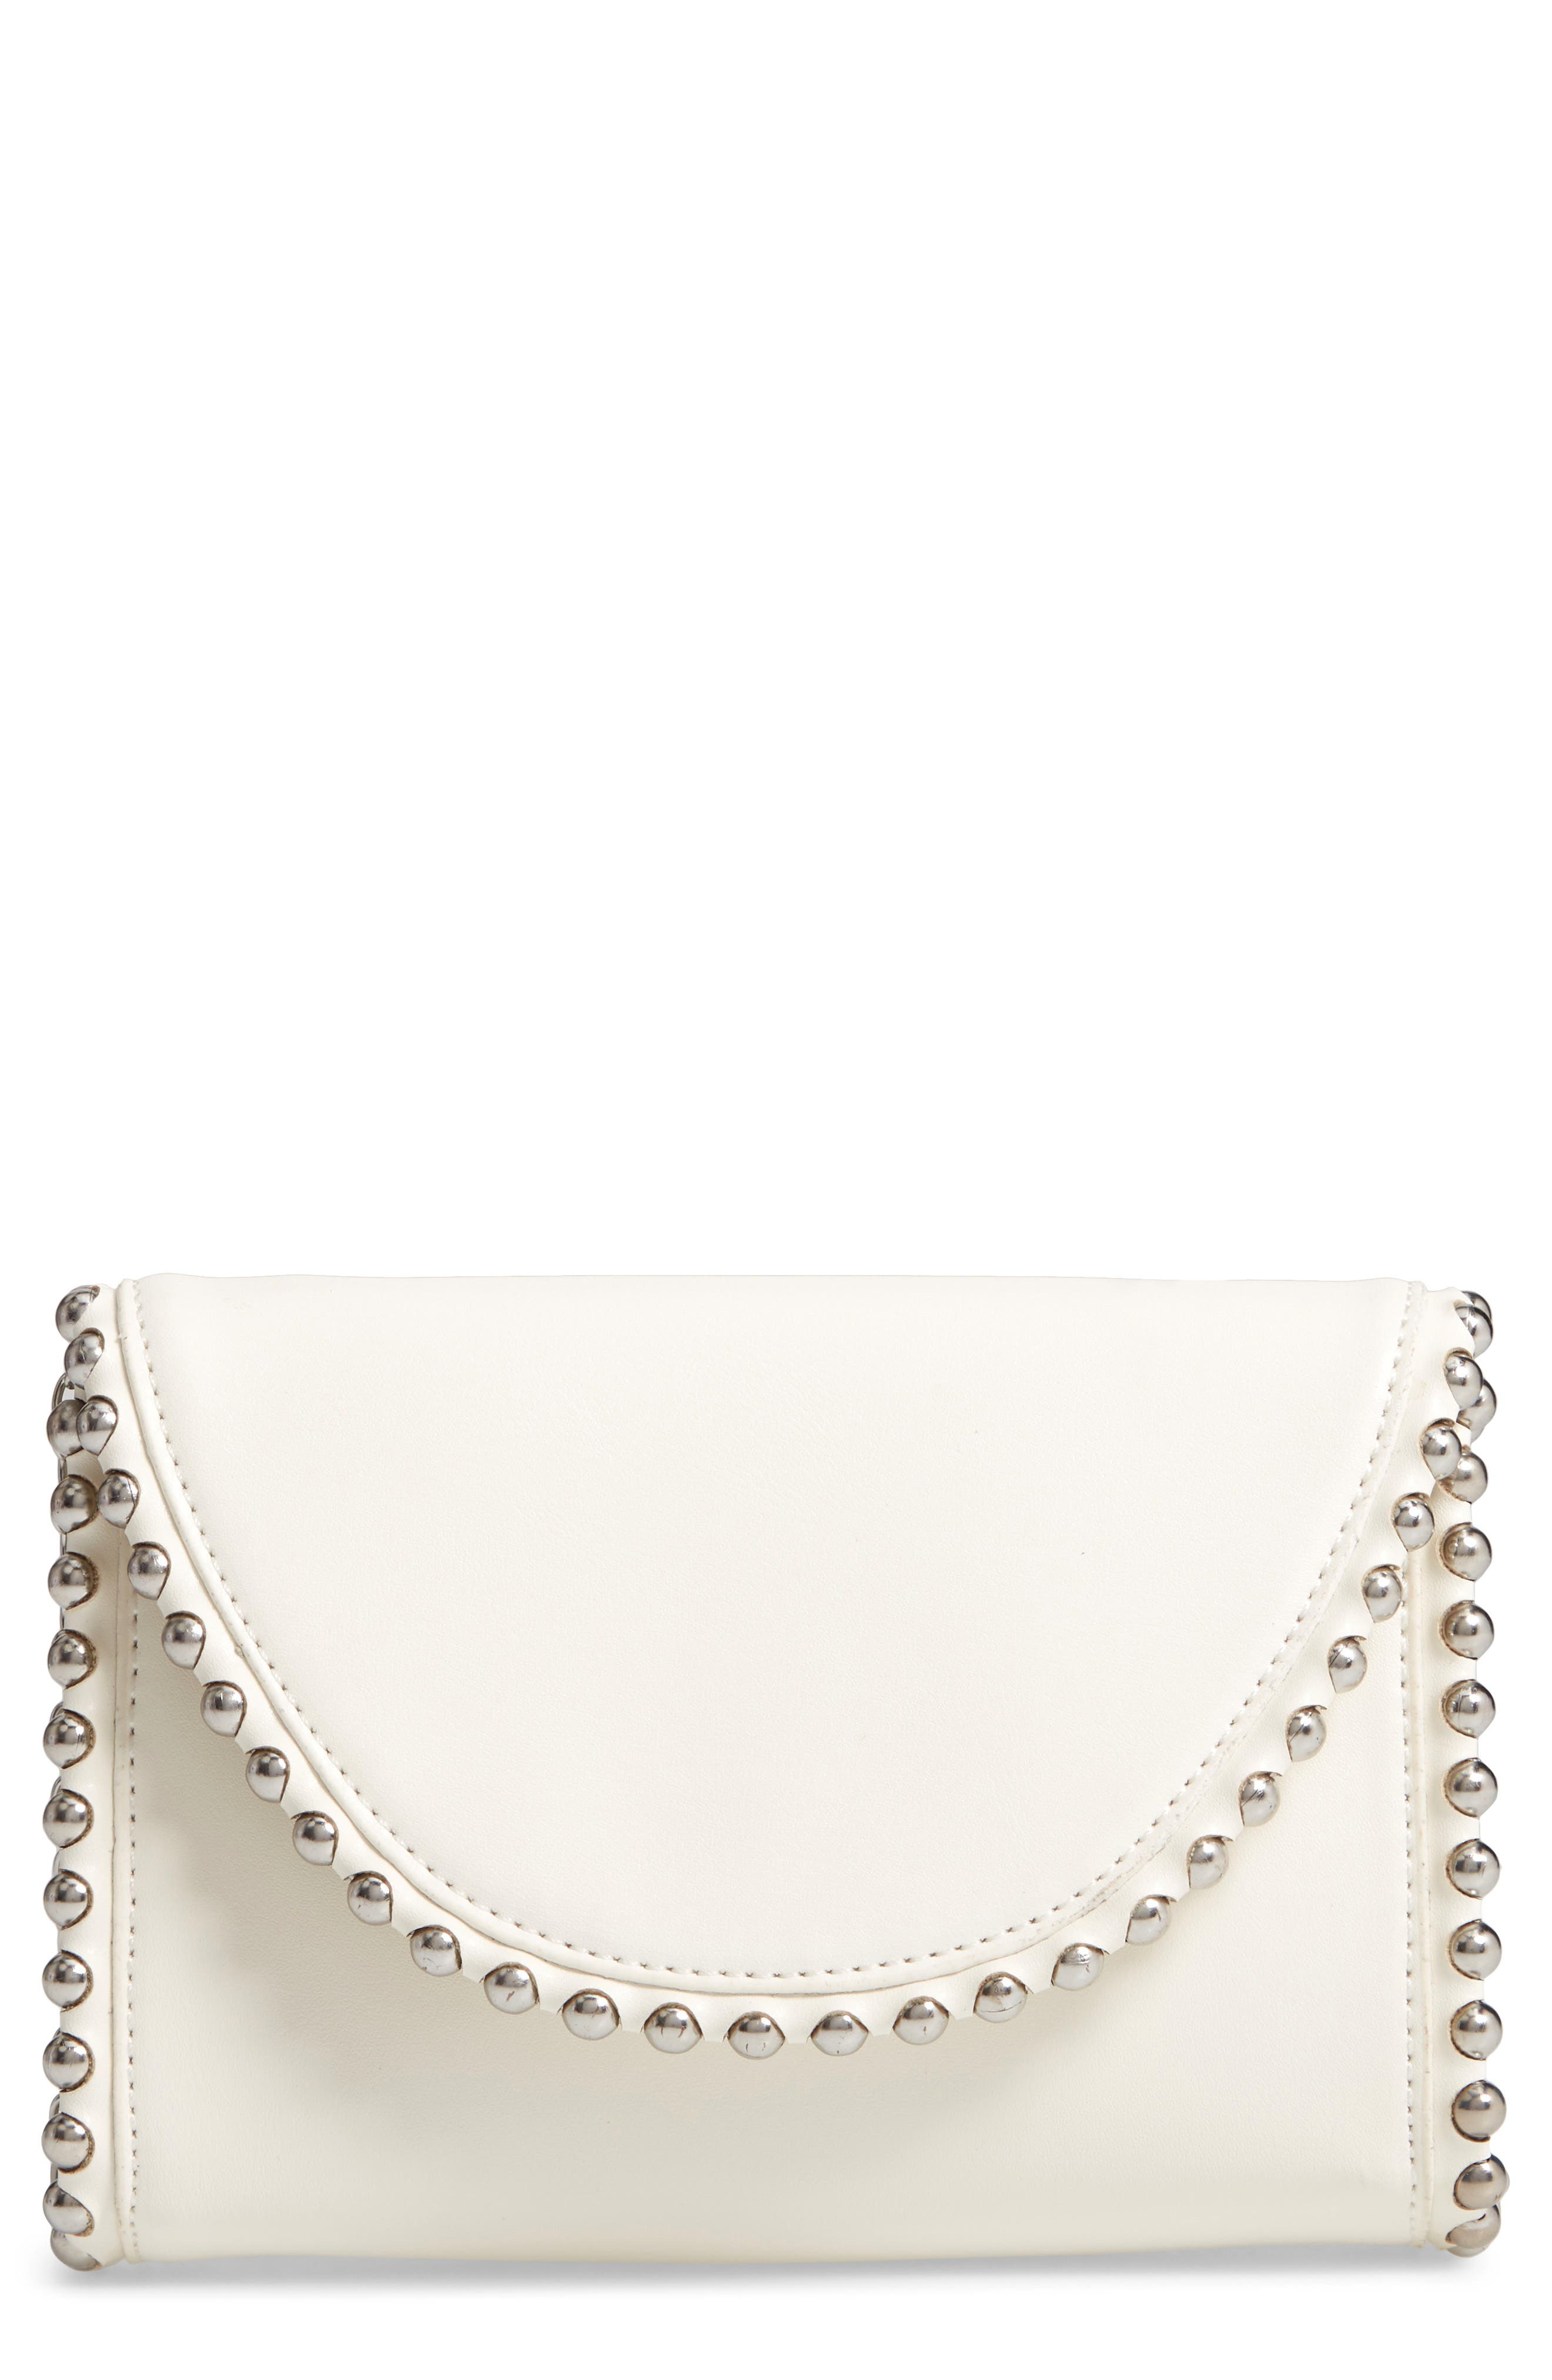 Stud Edge Faux Leather Crossbody Bag,                         Main,                         color, IVORY